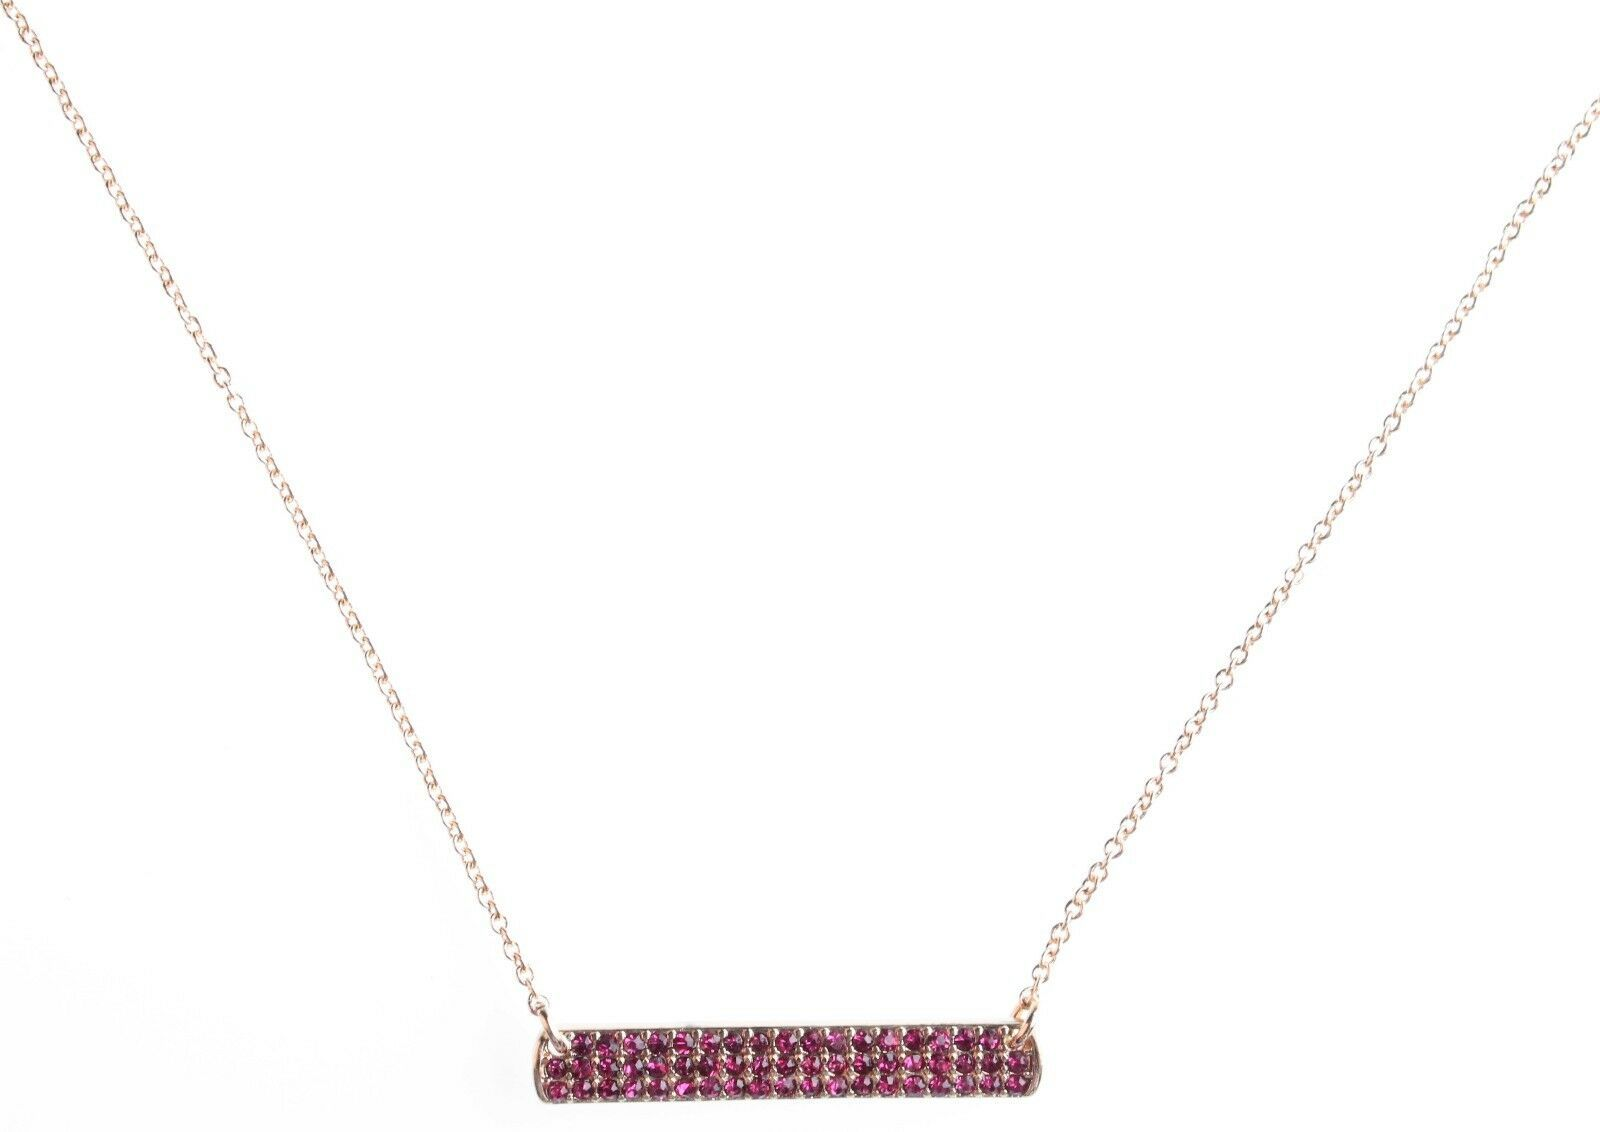 Cohesive Jewels Gold Plated Pink Cubic Zirconia Crystal Pave Bar Necklace NWT